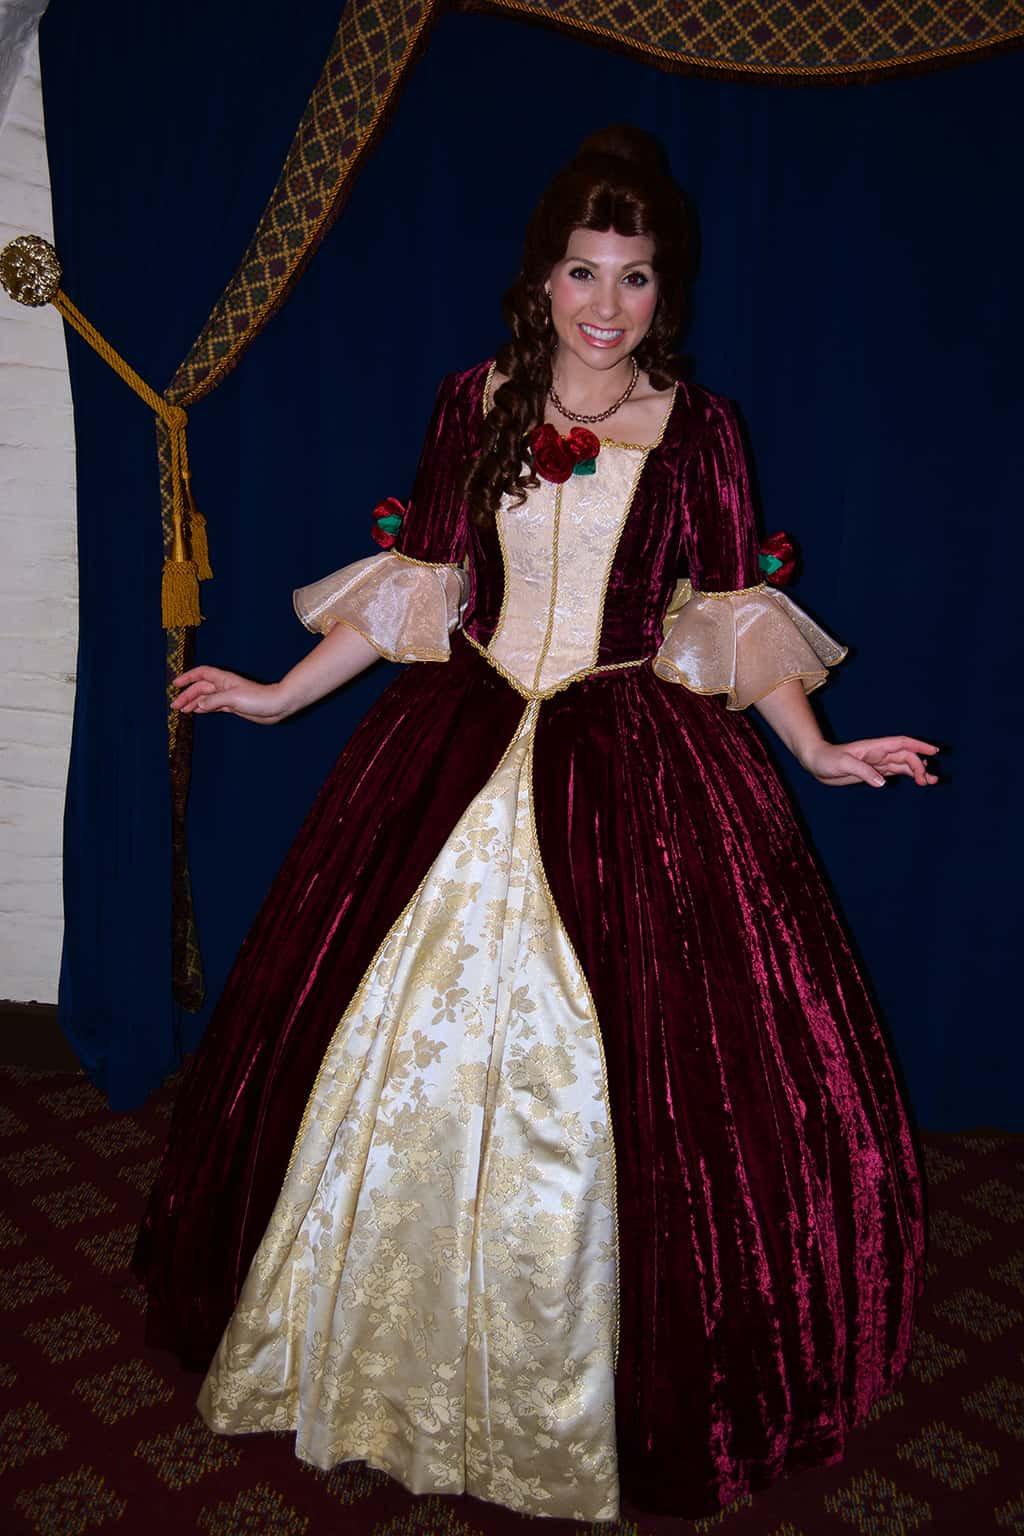 Belle in Red Dress at Epcot's France Pavilion